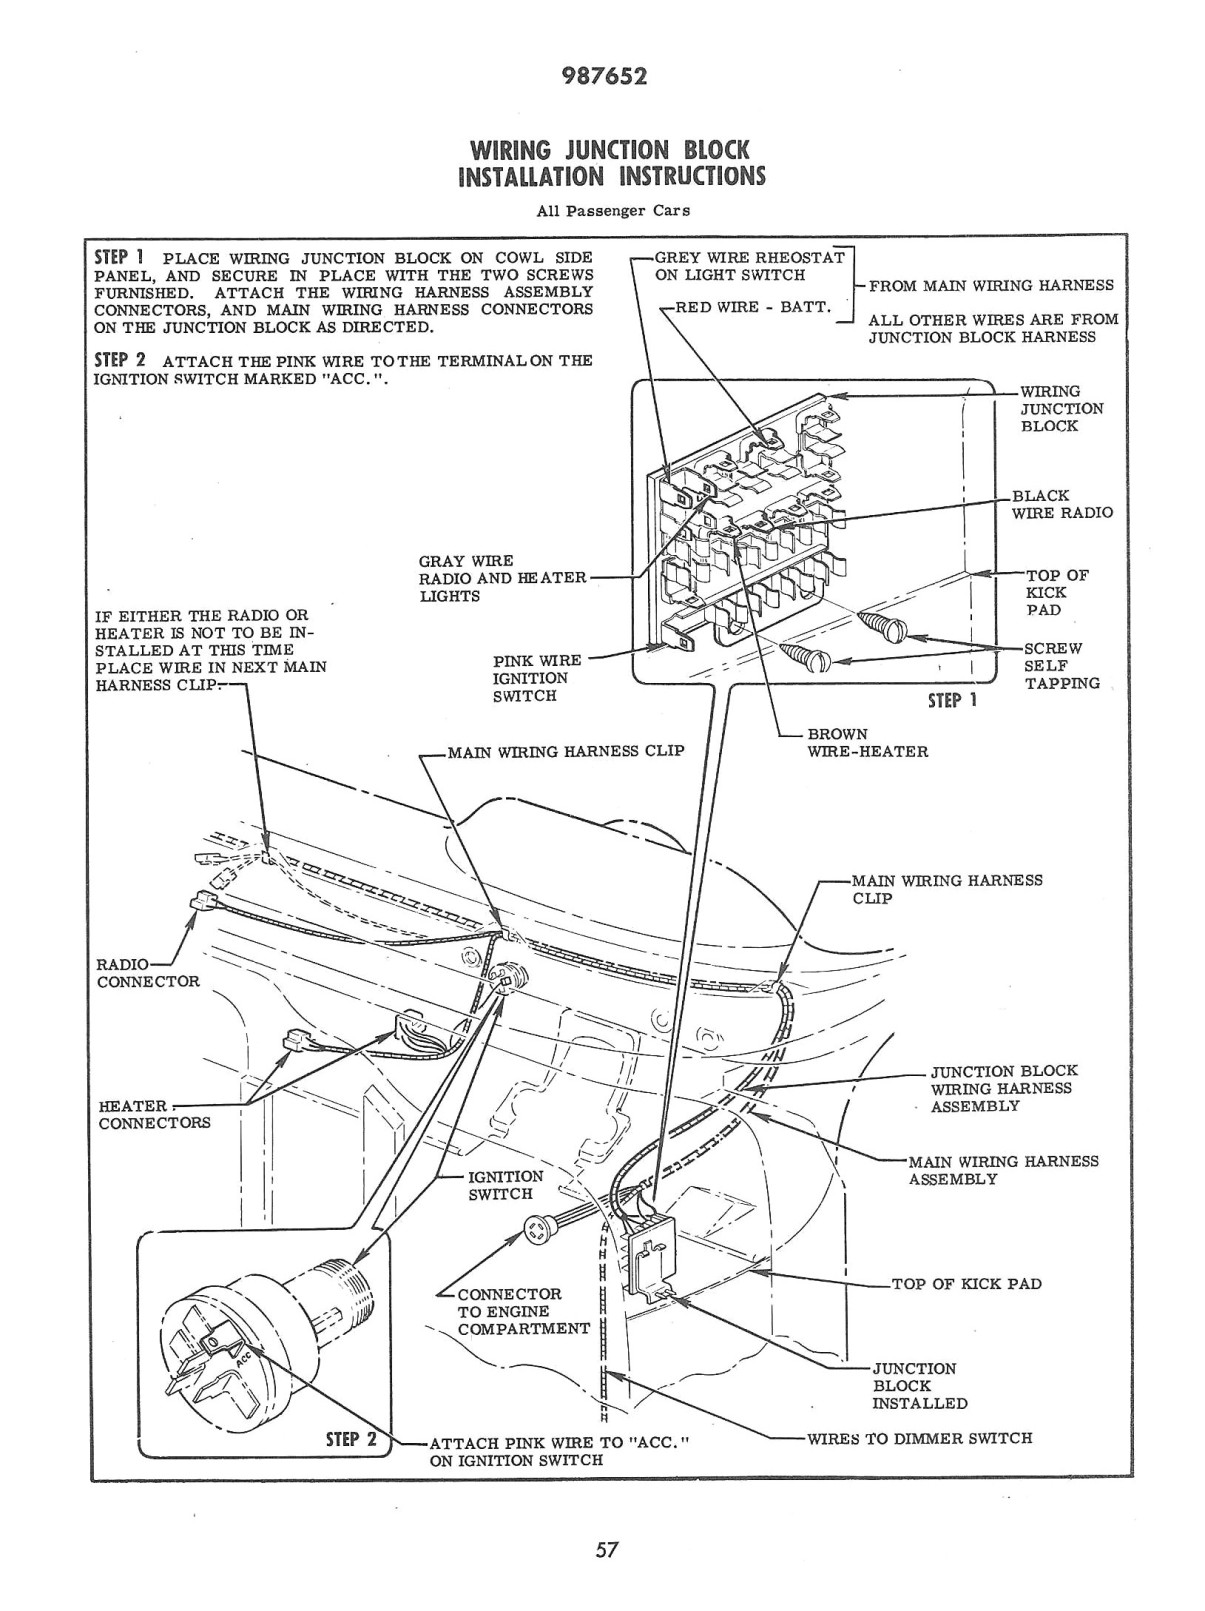 1957 chevrolet truck wiring diagram 5 1 volleyball chevy lights nissan vg30de engine diagrams